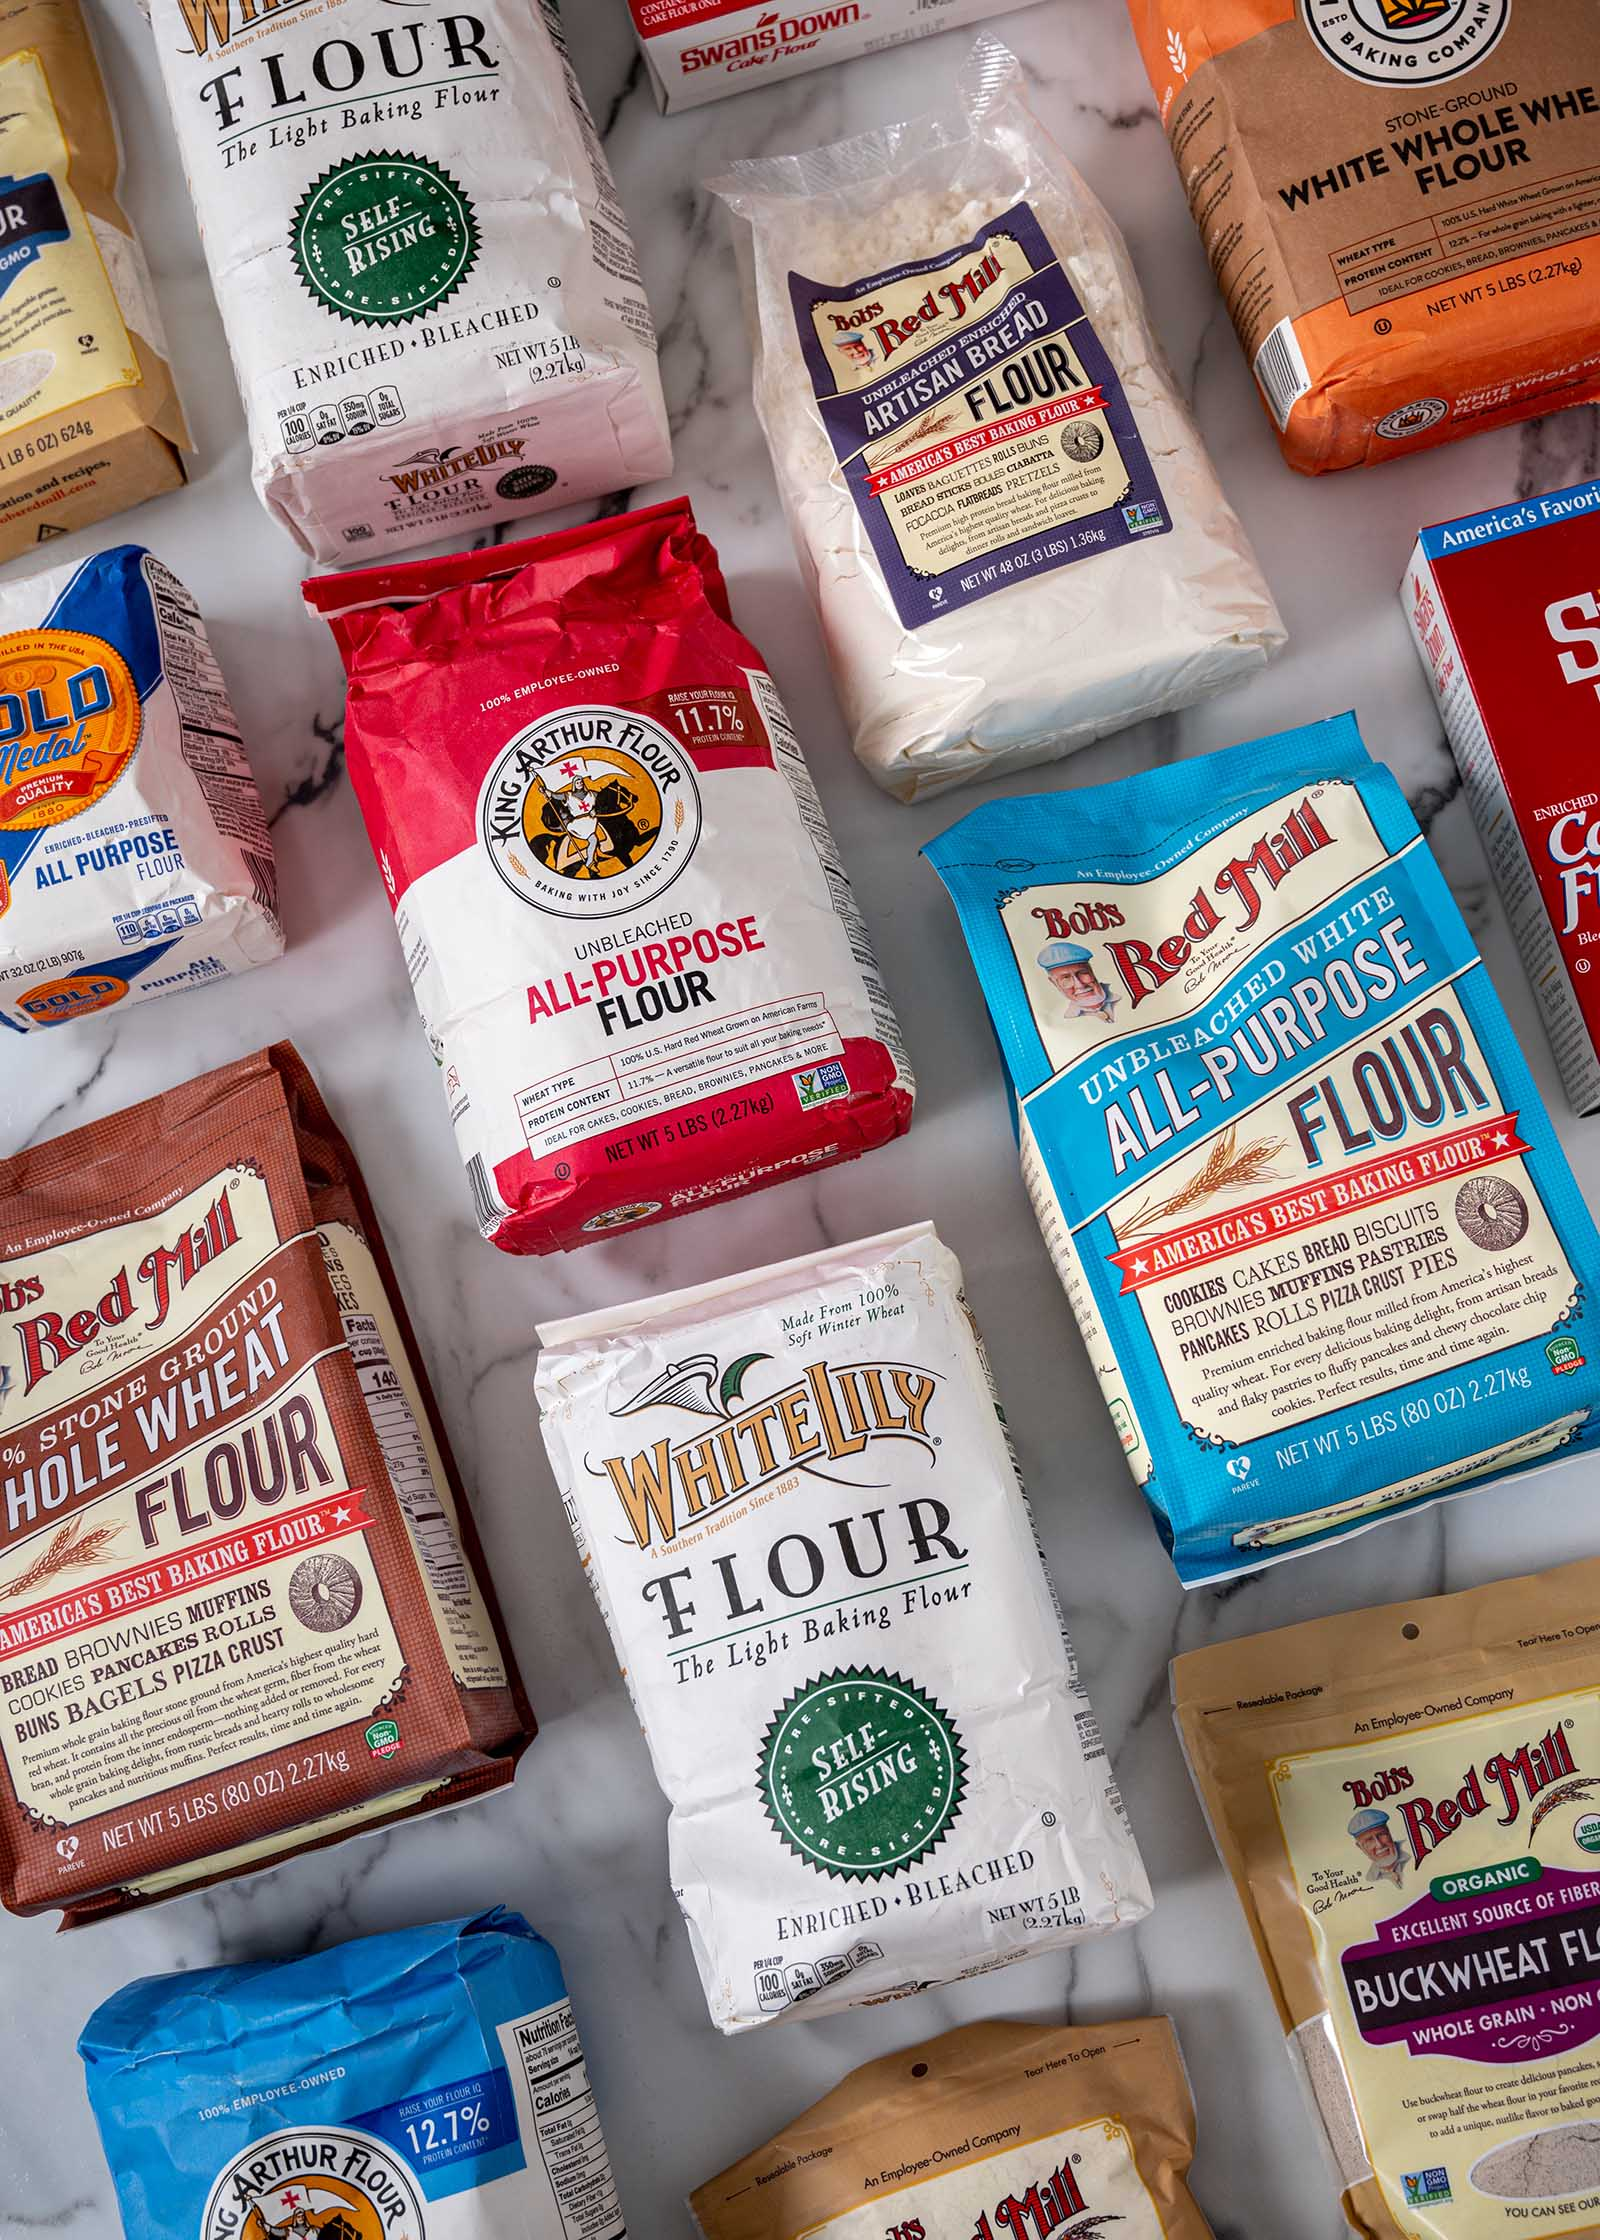 All the flours to cook with